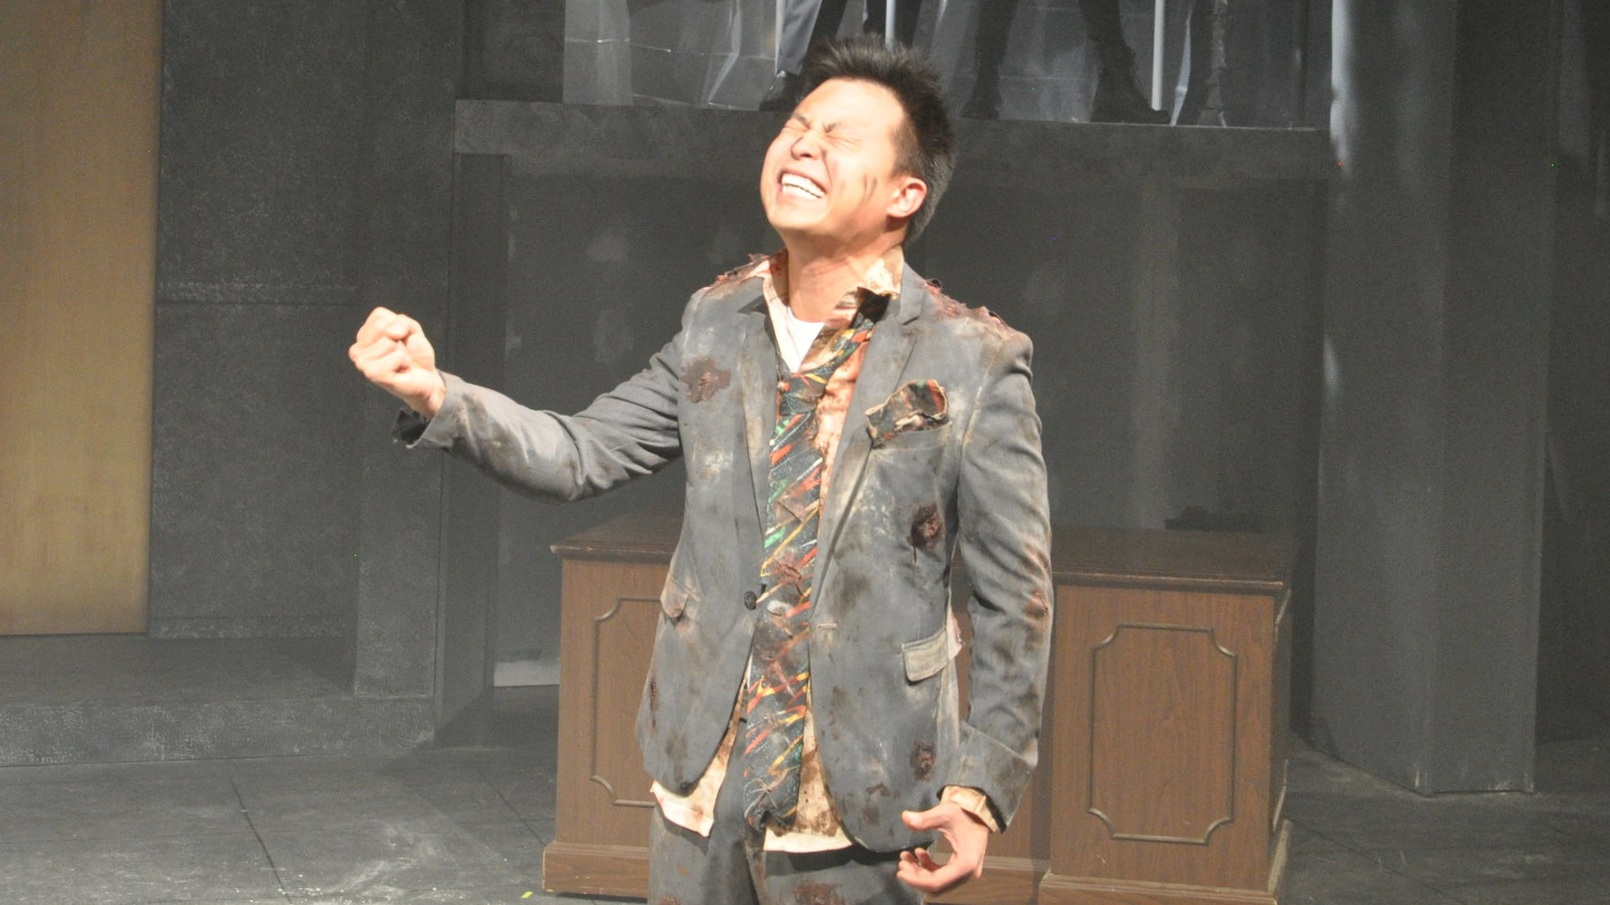 We're devastated too. (Jin Kim as 'Nakatomi' in 2018 at The Den Theatre. (c) Yippee Productions LLC)